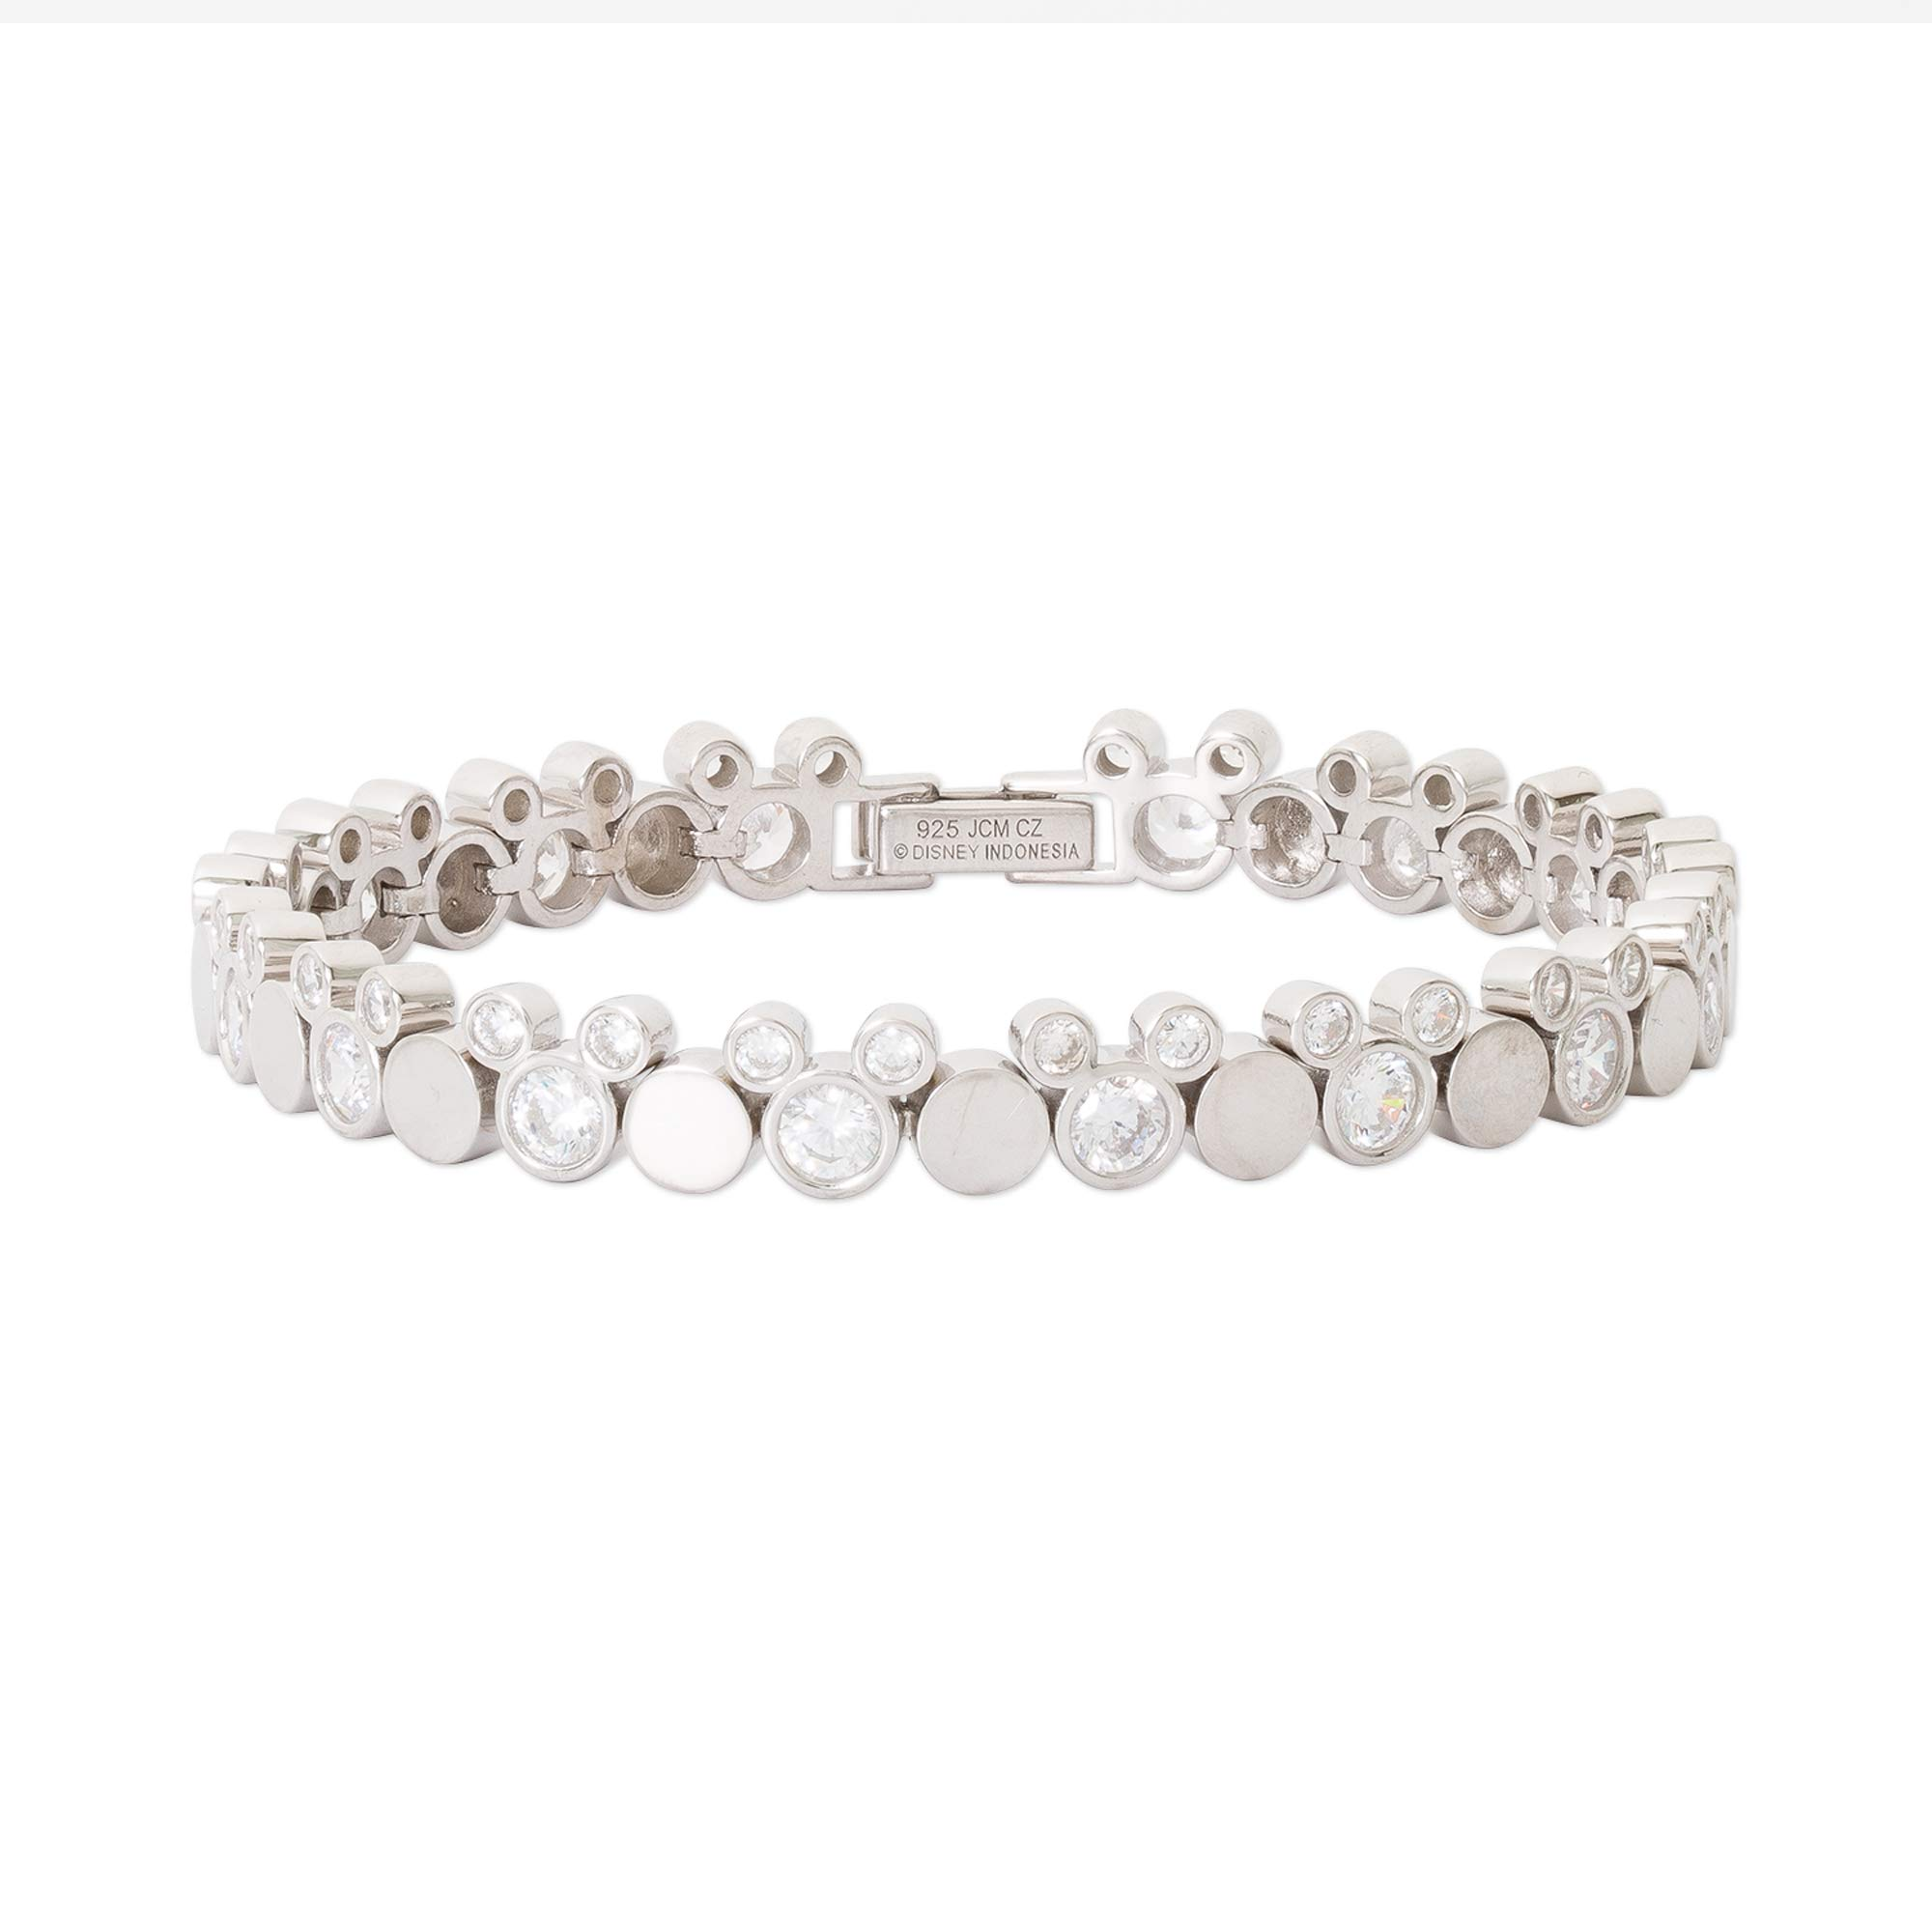 Disney Mickey Mouse Jewelry for Women and Girls, Sterling Silver Tennis Bracelet; Mickey's 90th Birthday Anniversary by Disney